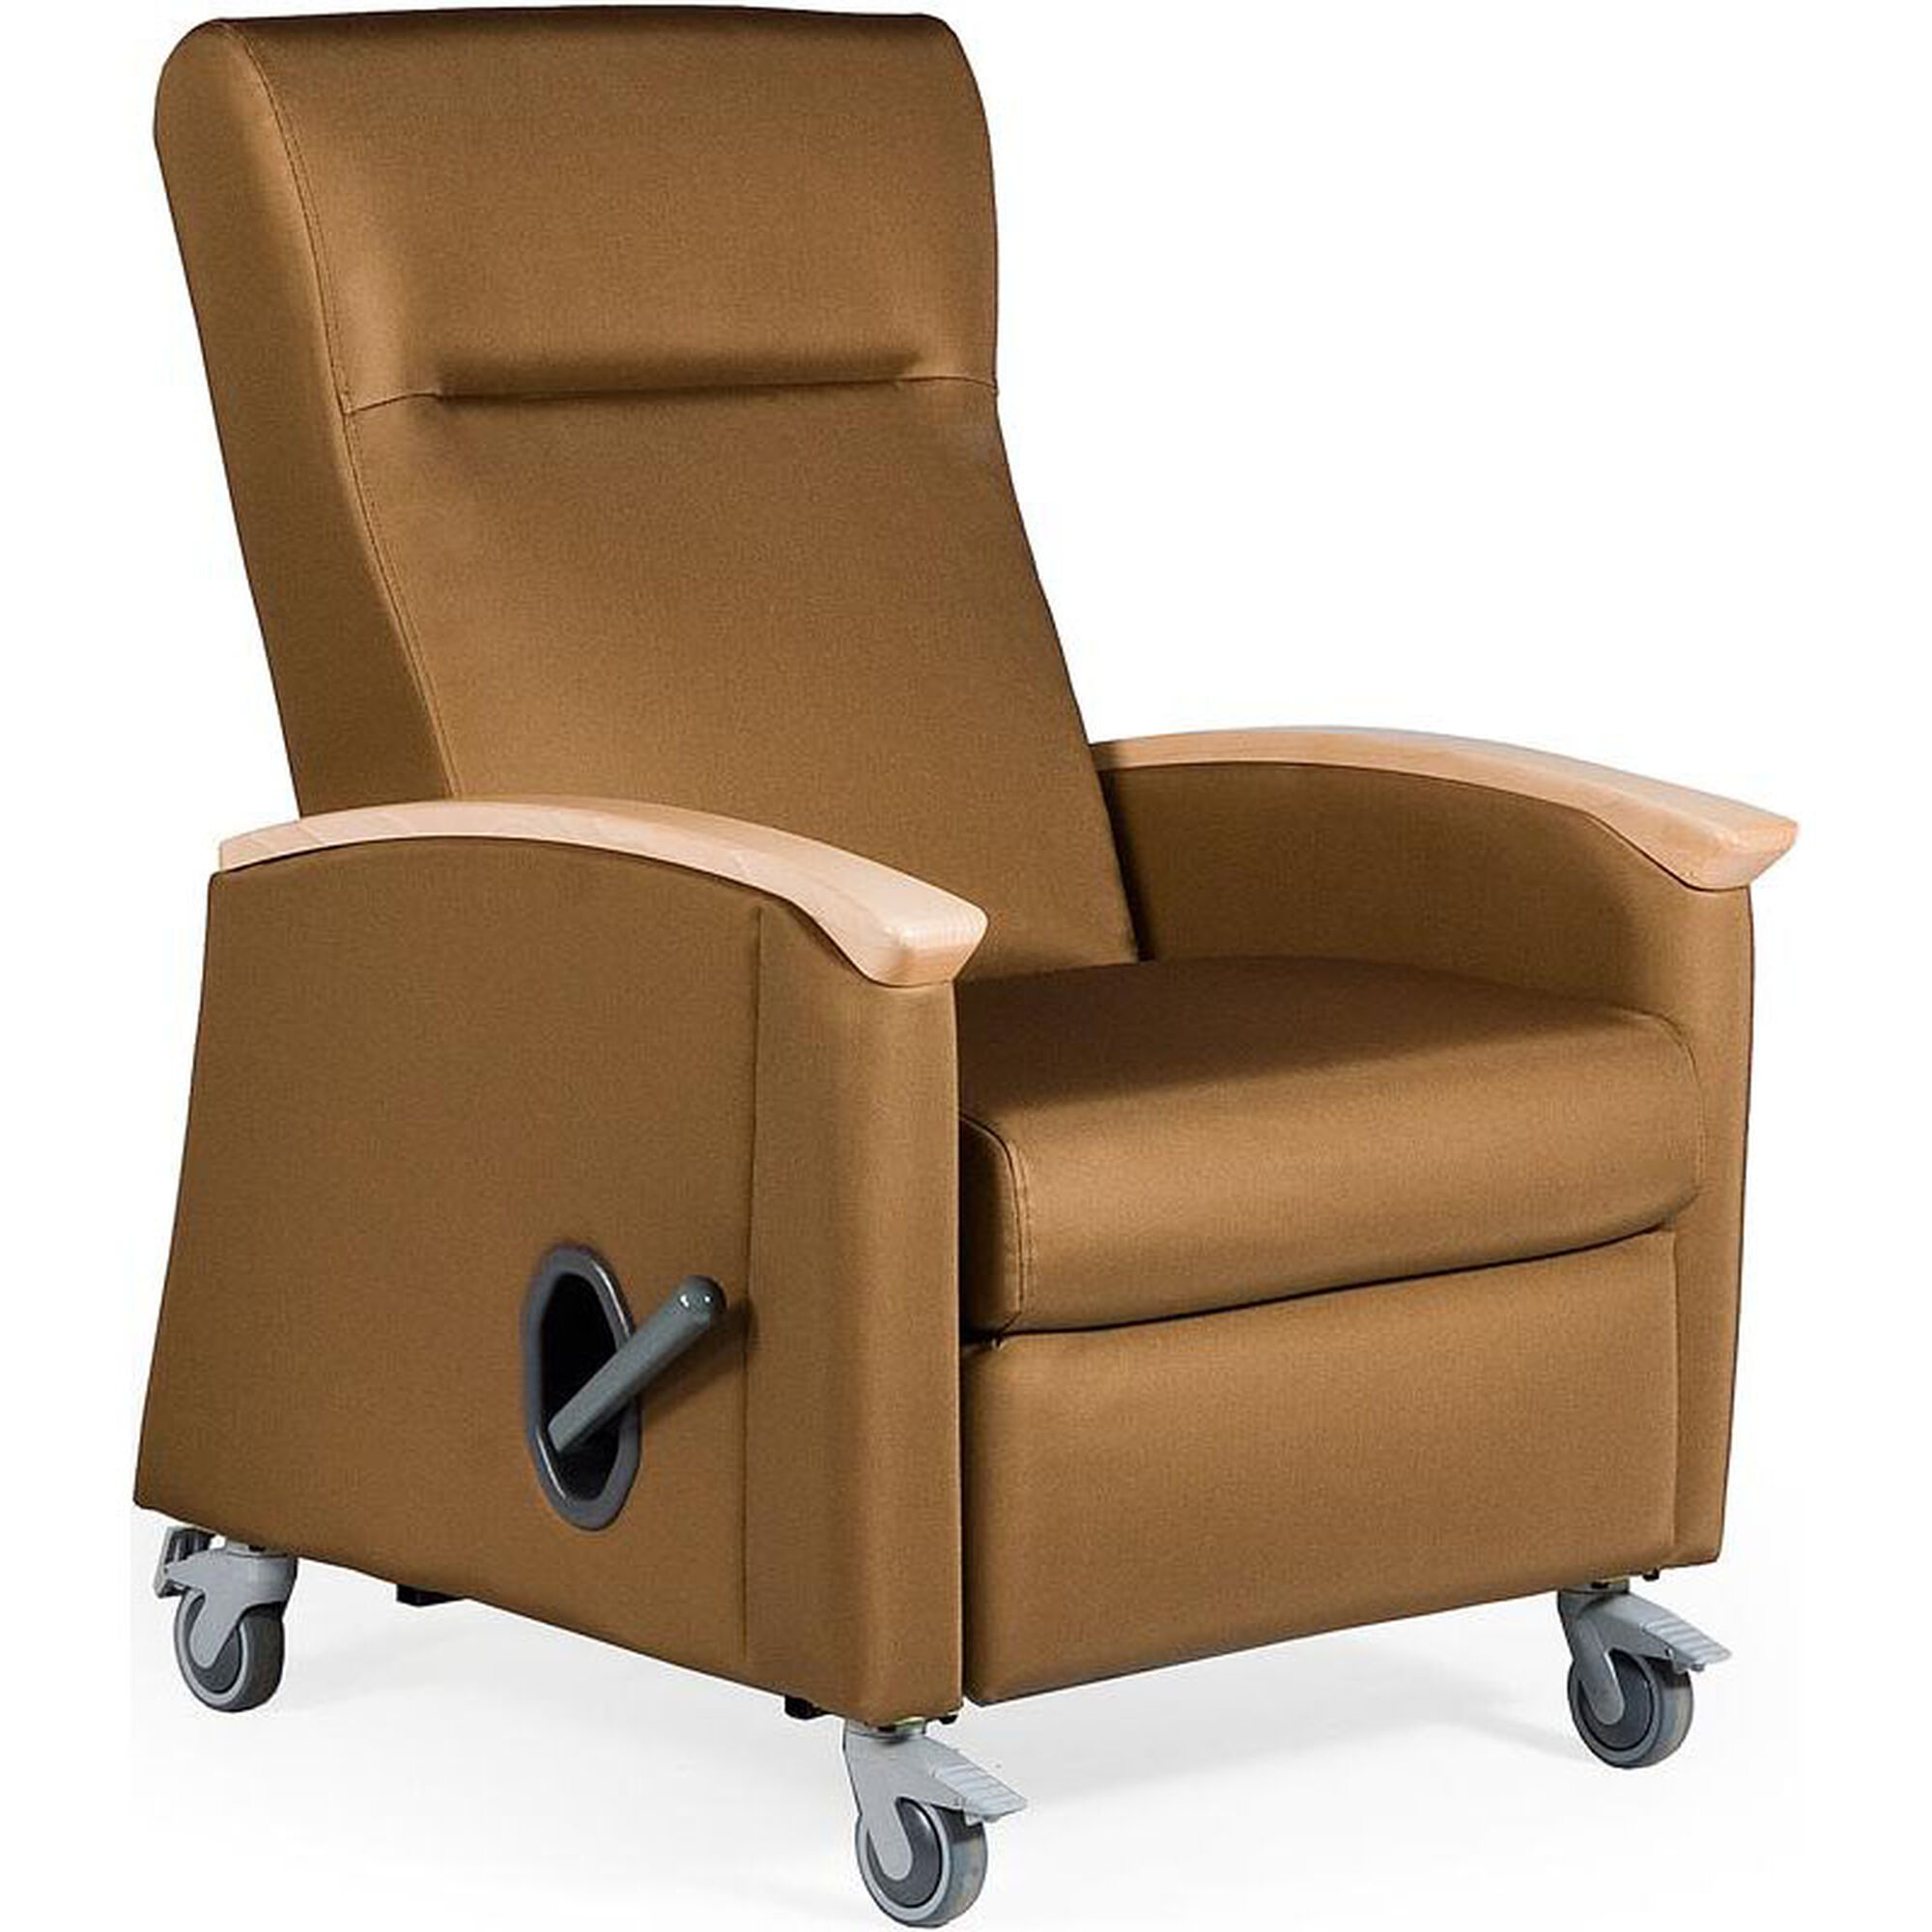 Medical rocker recliner h v bizchair